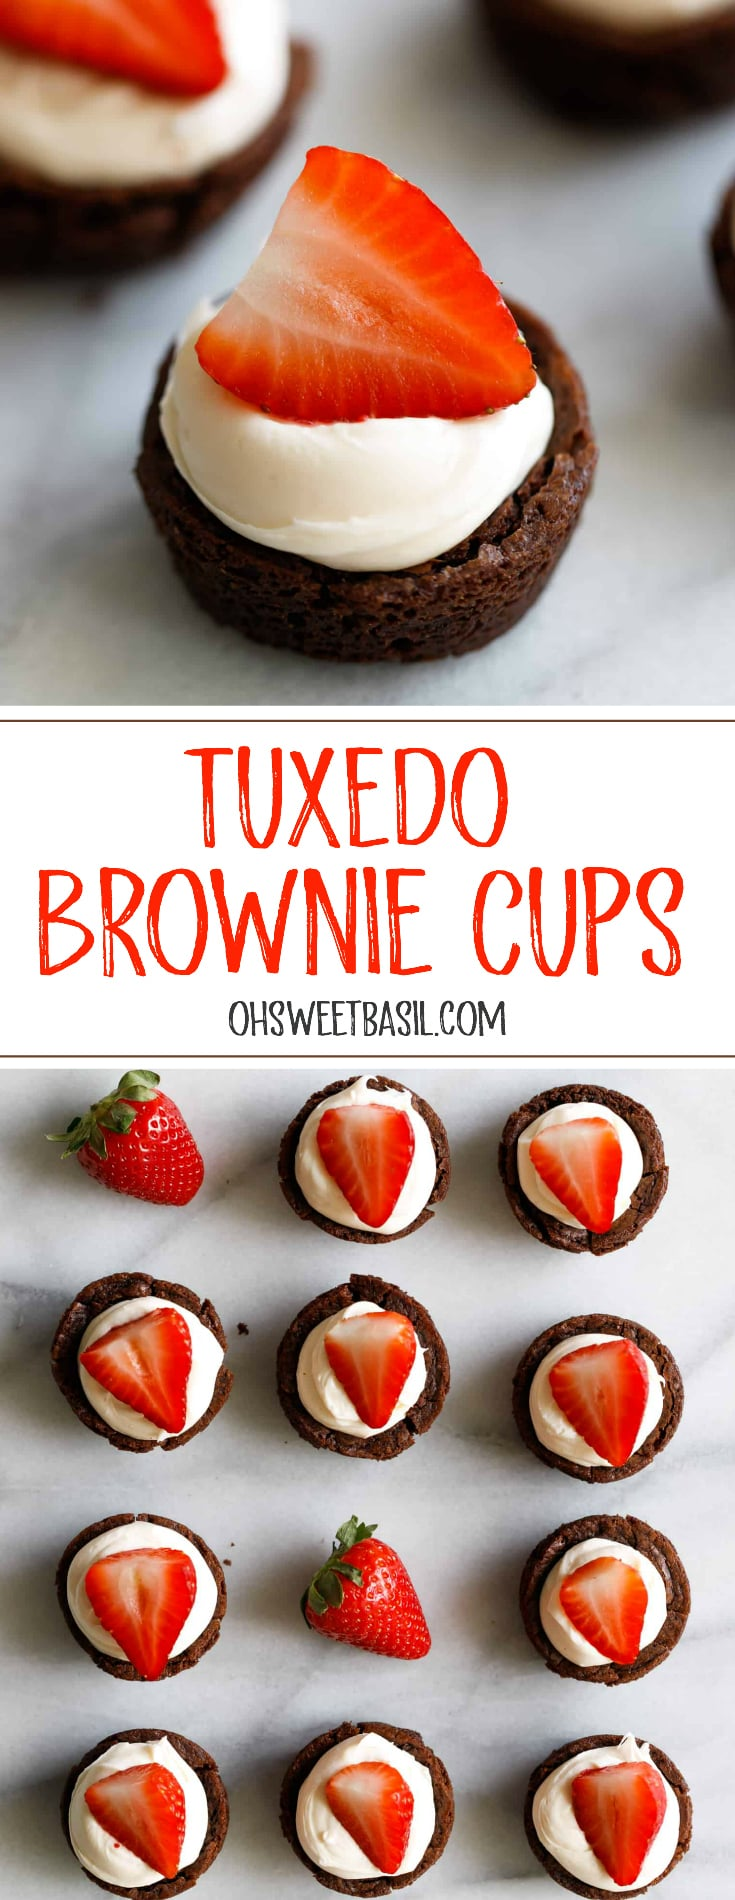 Brownies filled with a cream and topped with a bright red strawberry making elegant strawberry brownie tuxedo cups